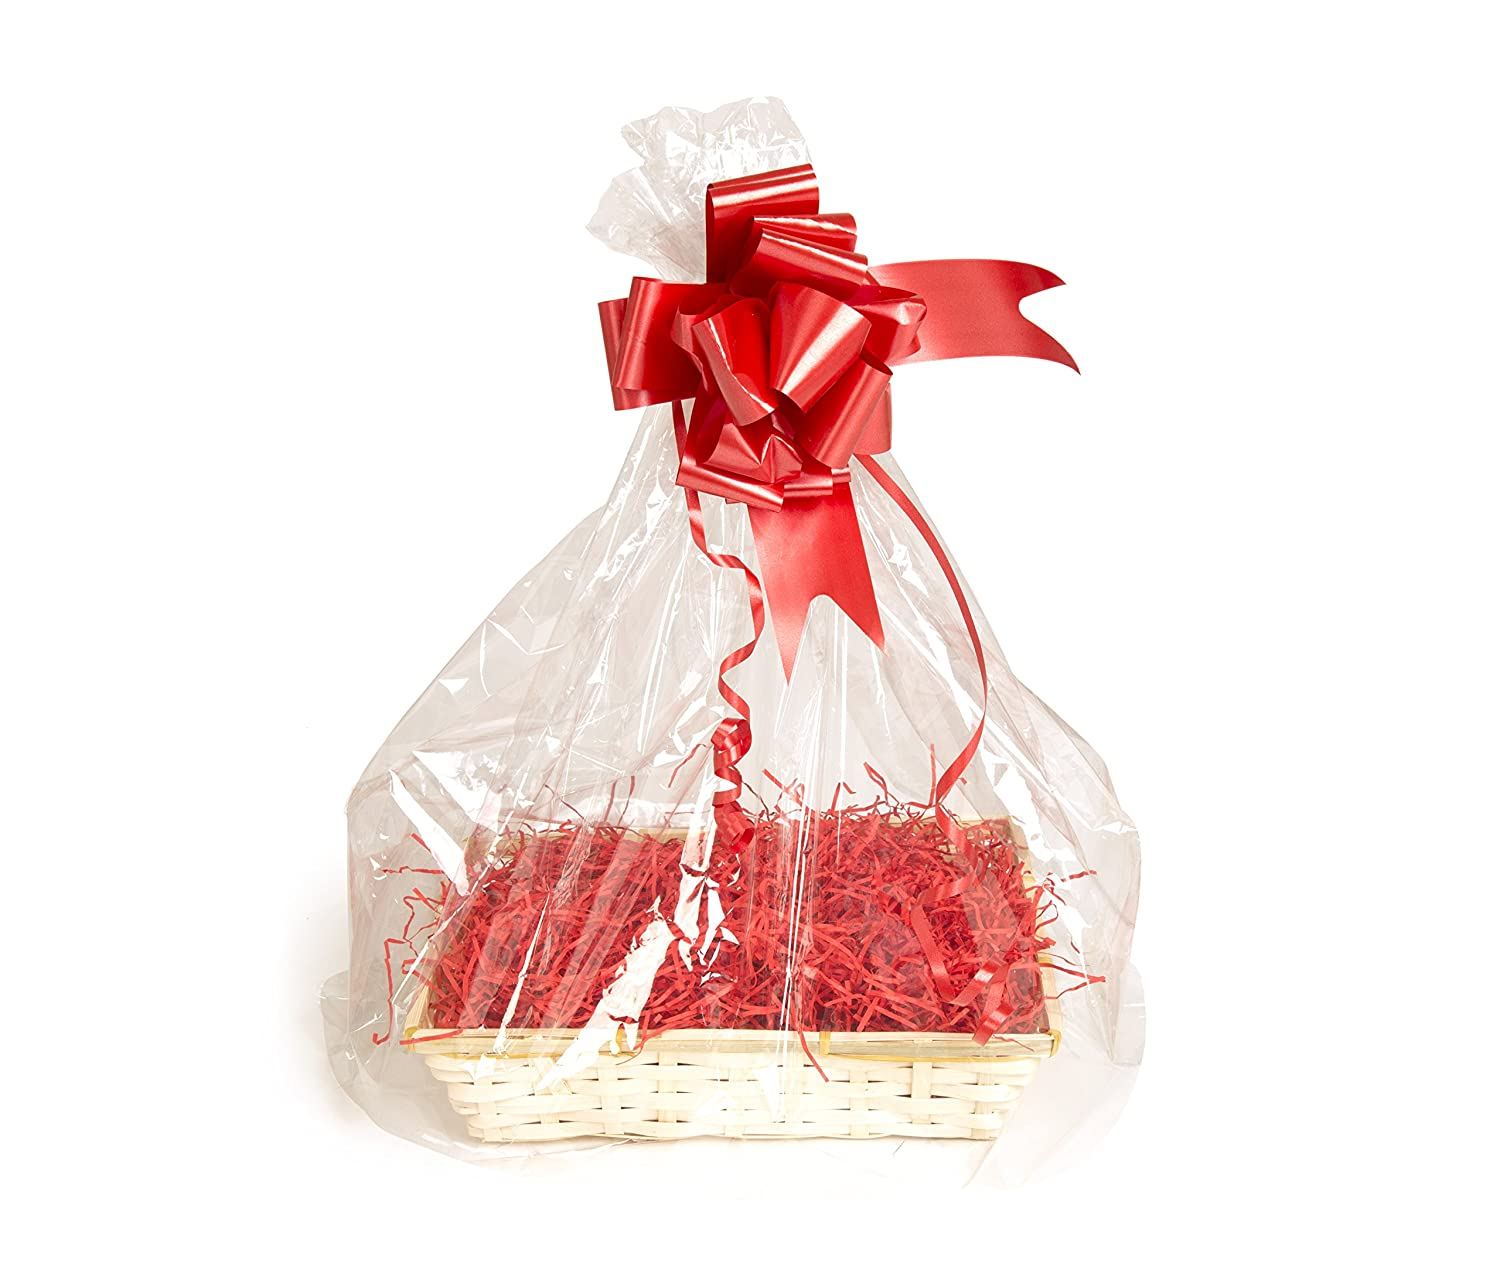 Your Gift Basket - Bamboo Basket Tray & DIY Hamper Kit with Red Shred, Red Bow and Clear Gift Wrap (305 mm length x 230 mm wide x 70 mm high)